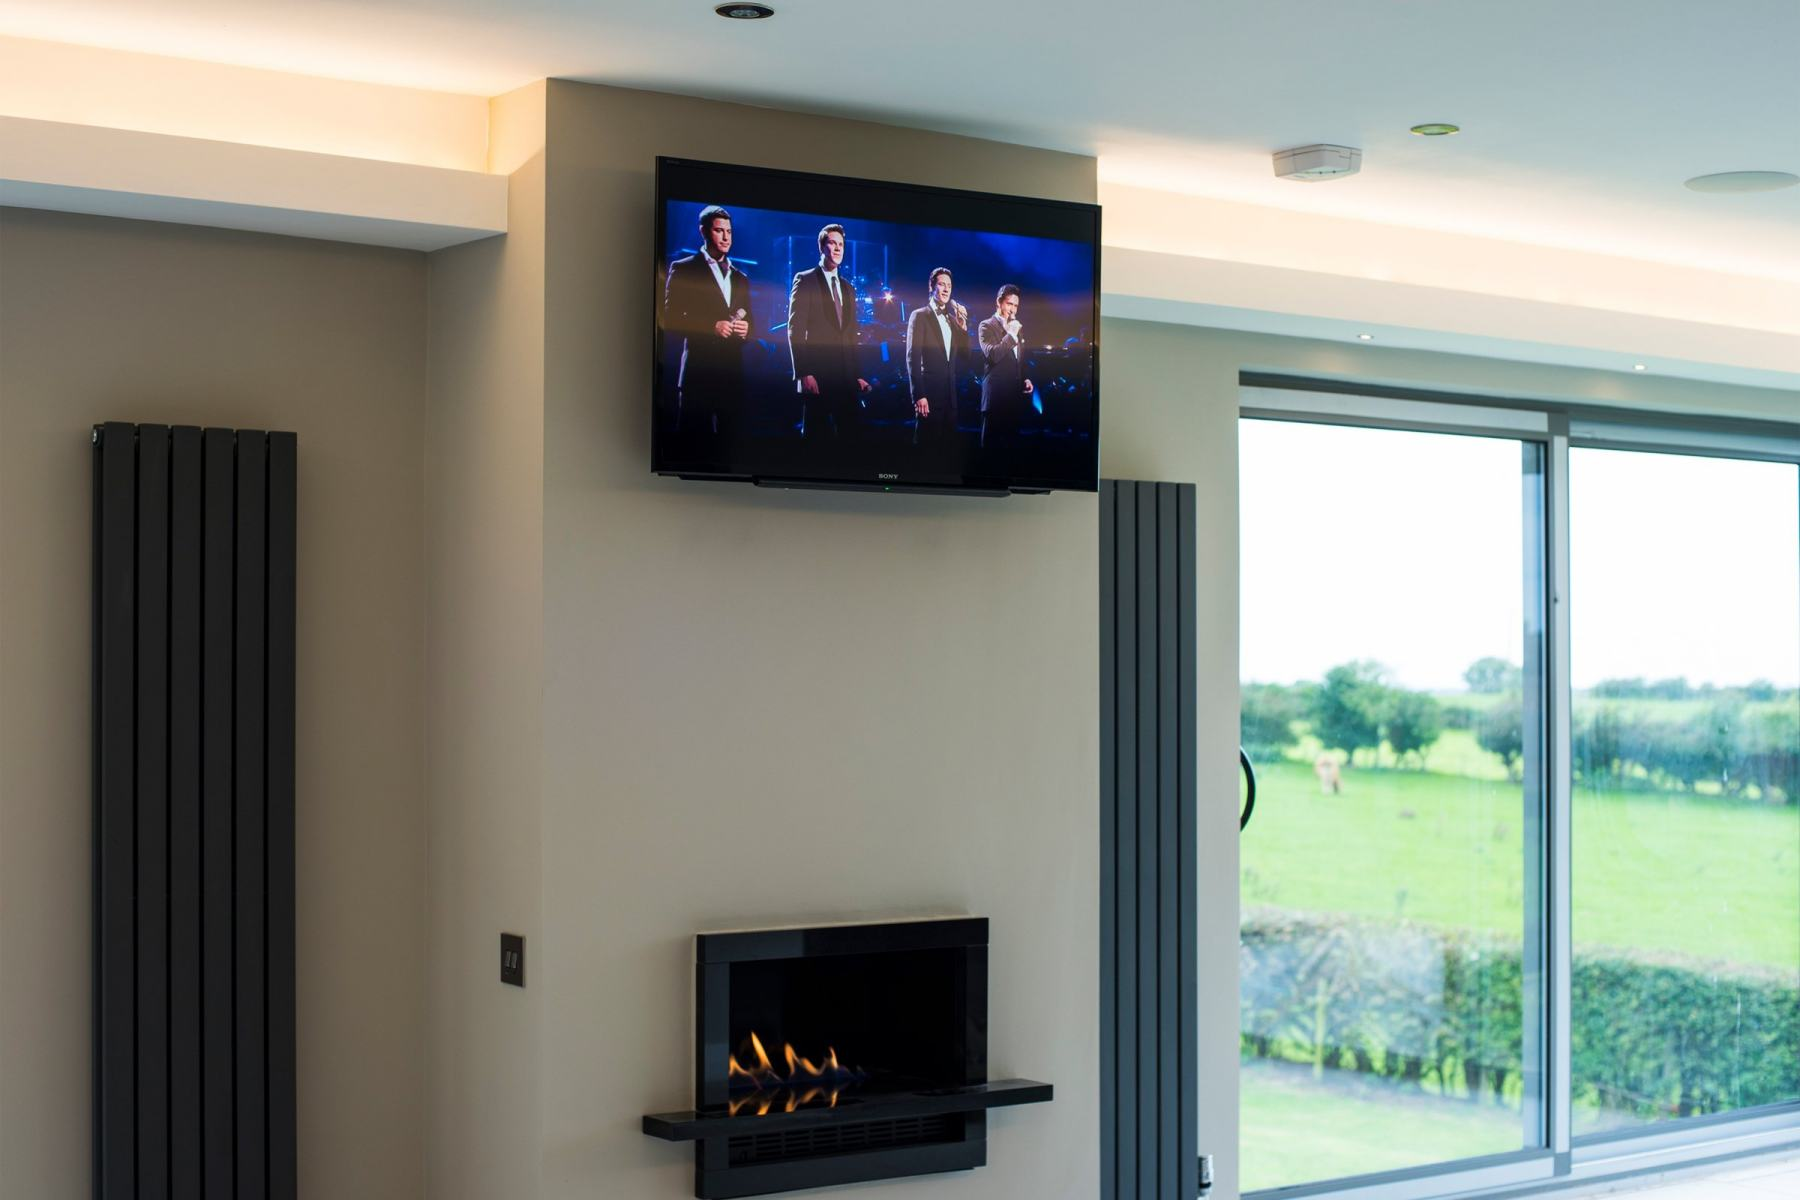 On wall television in smart home